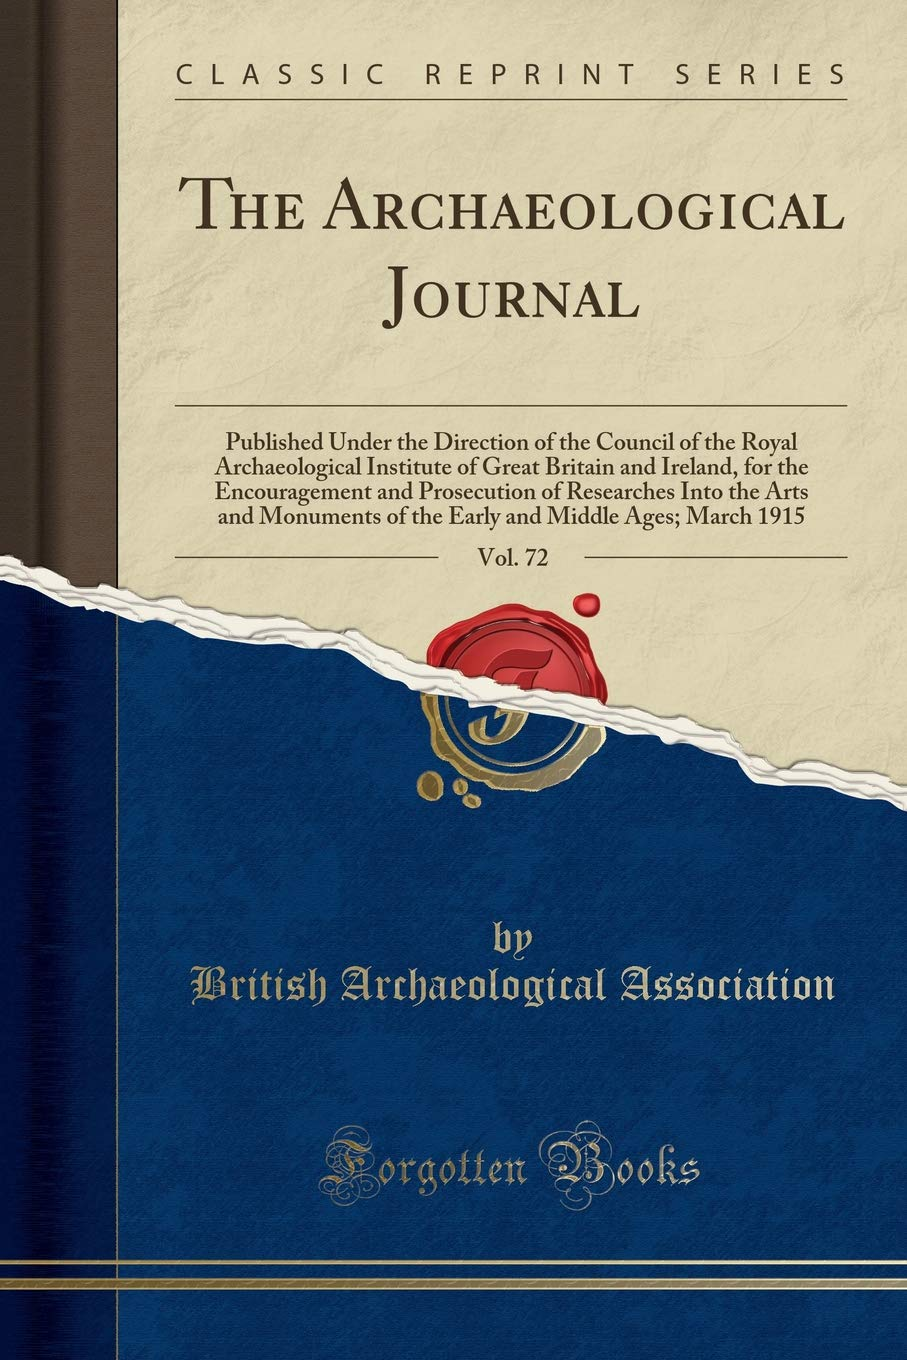 Download The Archaeological Journal, Vol. 72: Published Under the Direction of the Council of the Royal Archaeological Institute of Great Britain and Ireland, ... Arts and Monuments of the Early and Middle A ebook